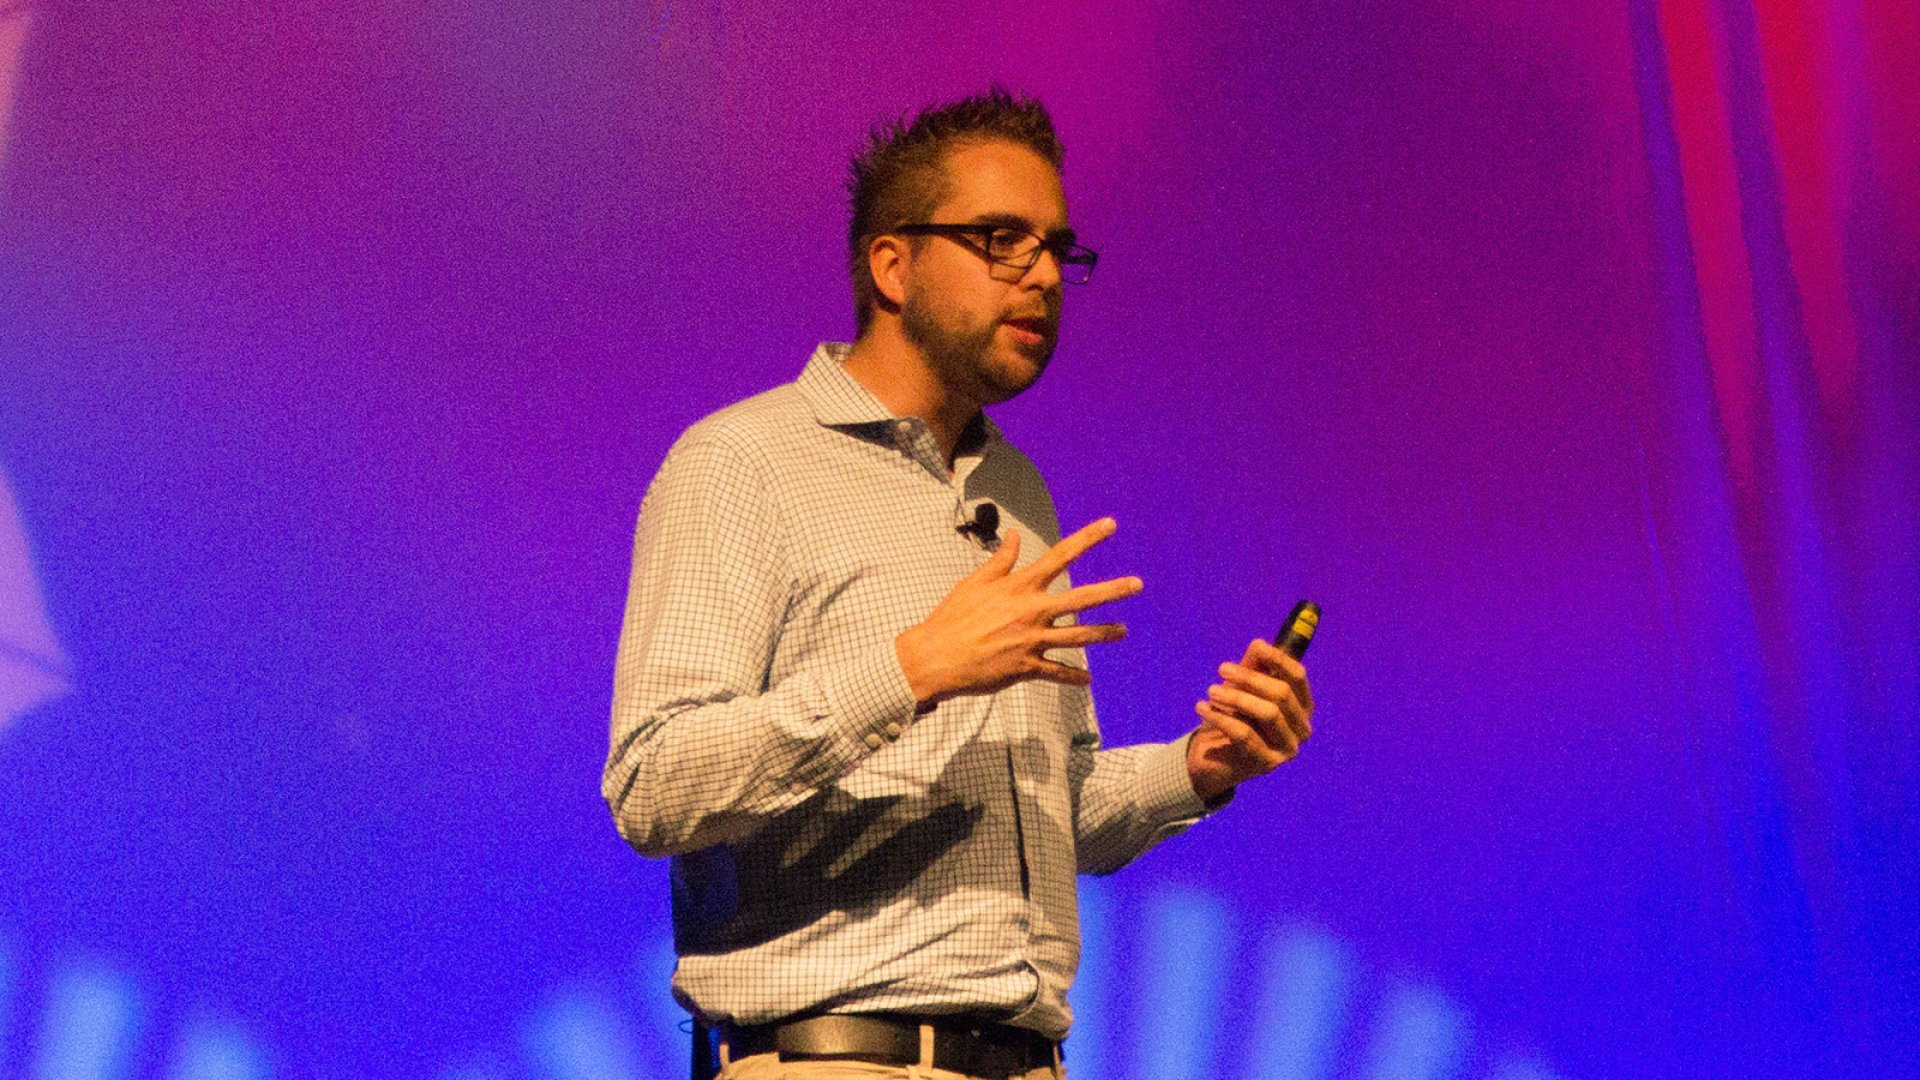 Dries Buytaert giving a keynote at DrupalCon 2015 in Los Angeles.